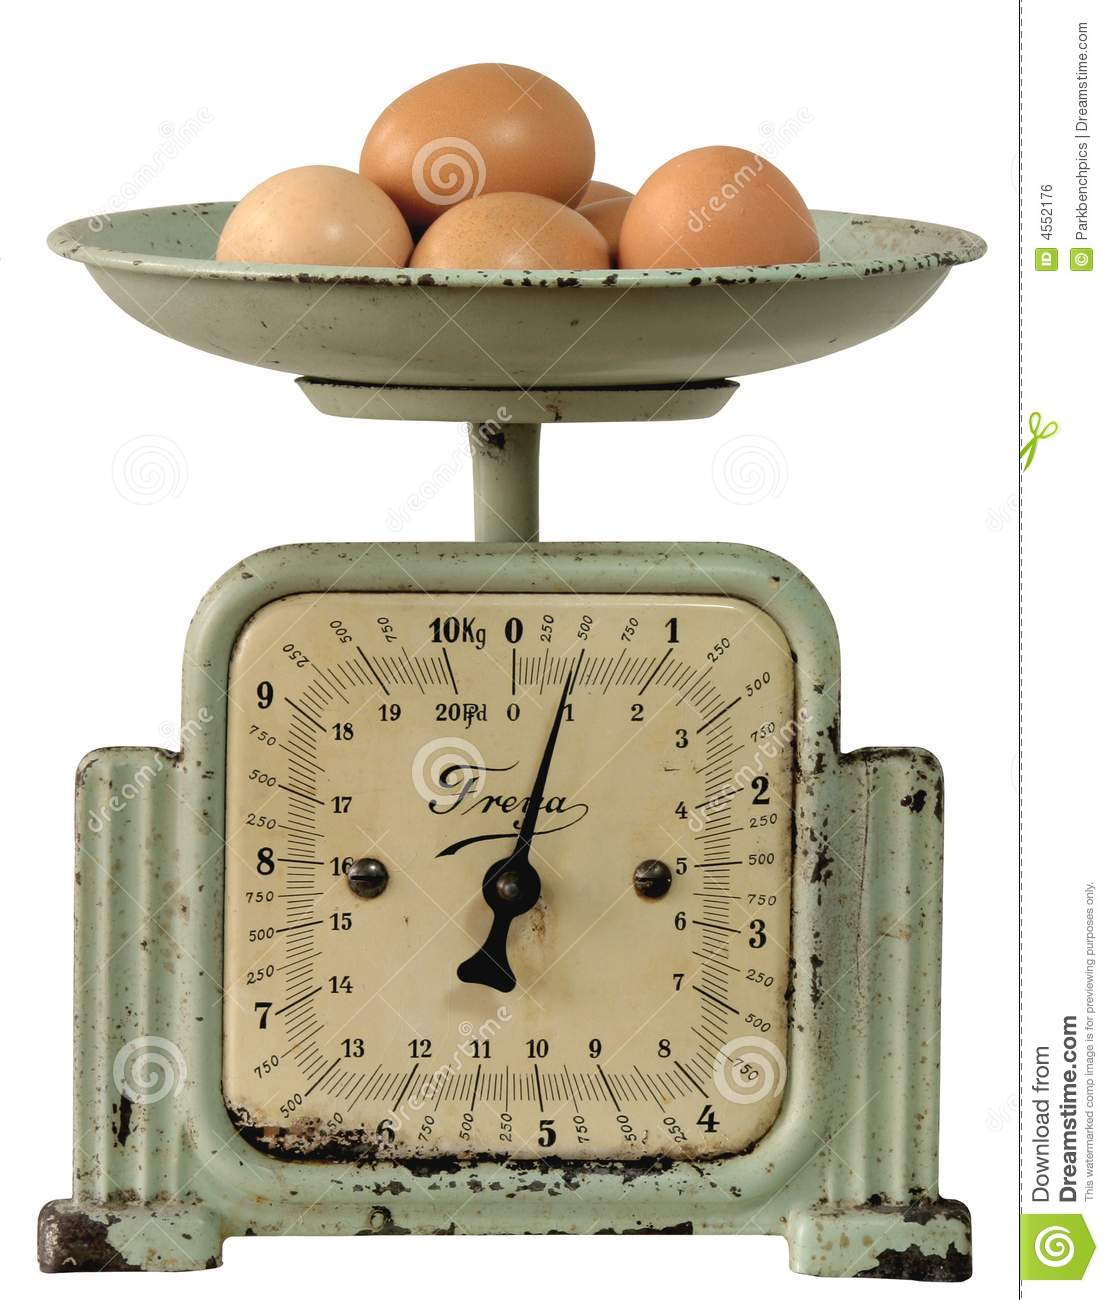 Vintage Kitchen-scales With Eggs Stock Photo